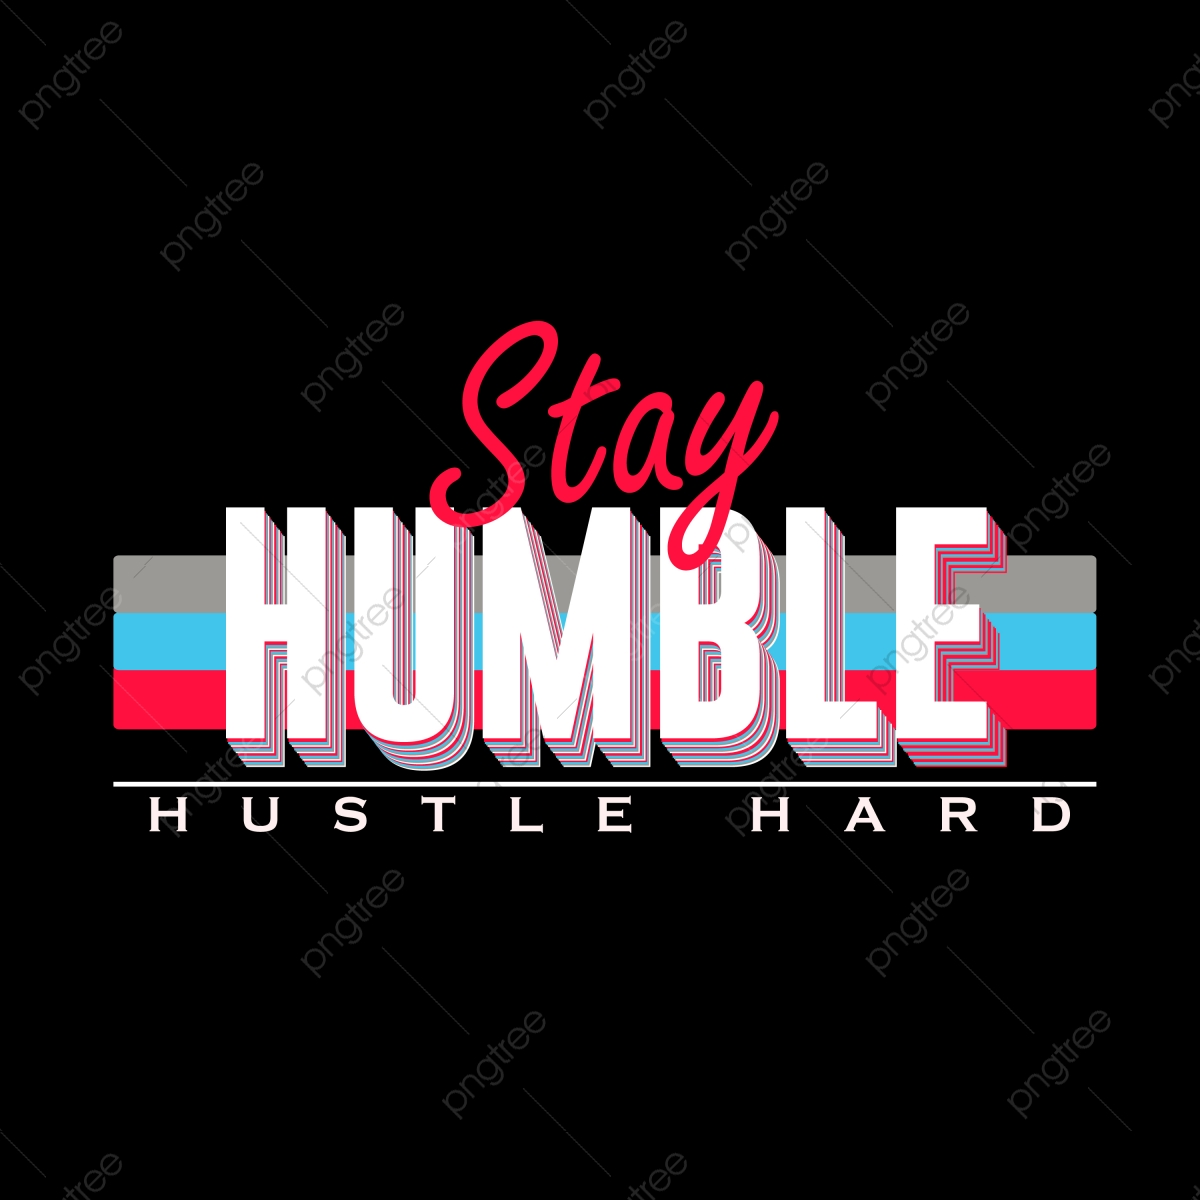 Stay Humble T Shirt Design Apparel Art Artwork Png And Vector With Transparent Background For Free Download